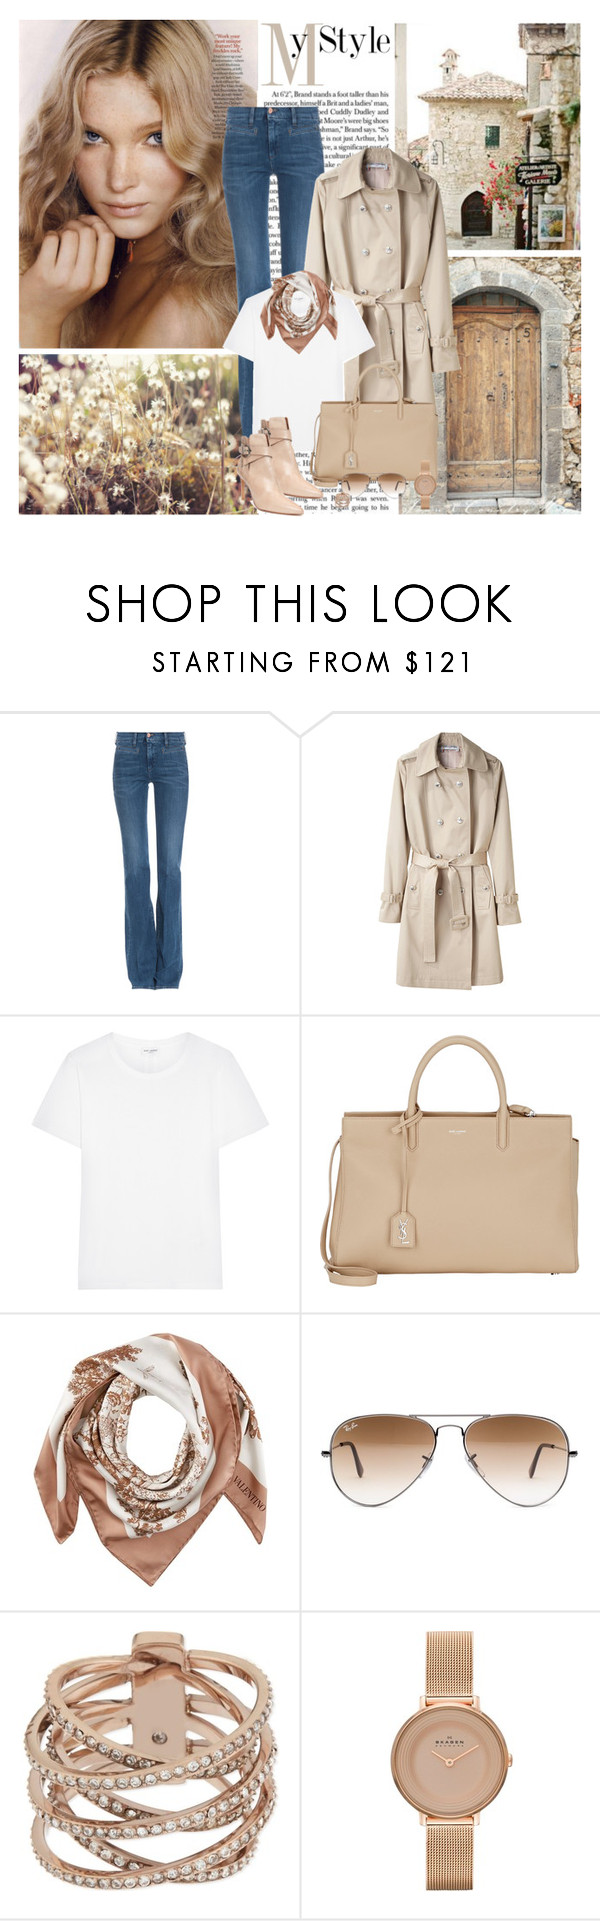 """""""Just before Autumn..."""" by dezaval ❤ liked on Polyvore featuring Beauty Secrets, M.i.h Jeans, Yves Saint Laurent, Valentino, Ray-Ban, Michael Kors, Skagen and Donald J Pliner"""